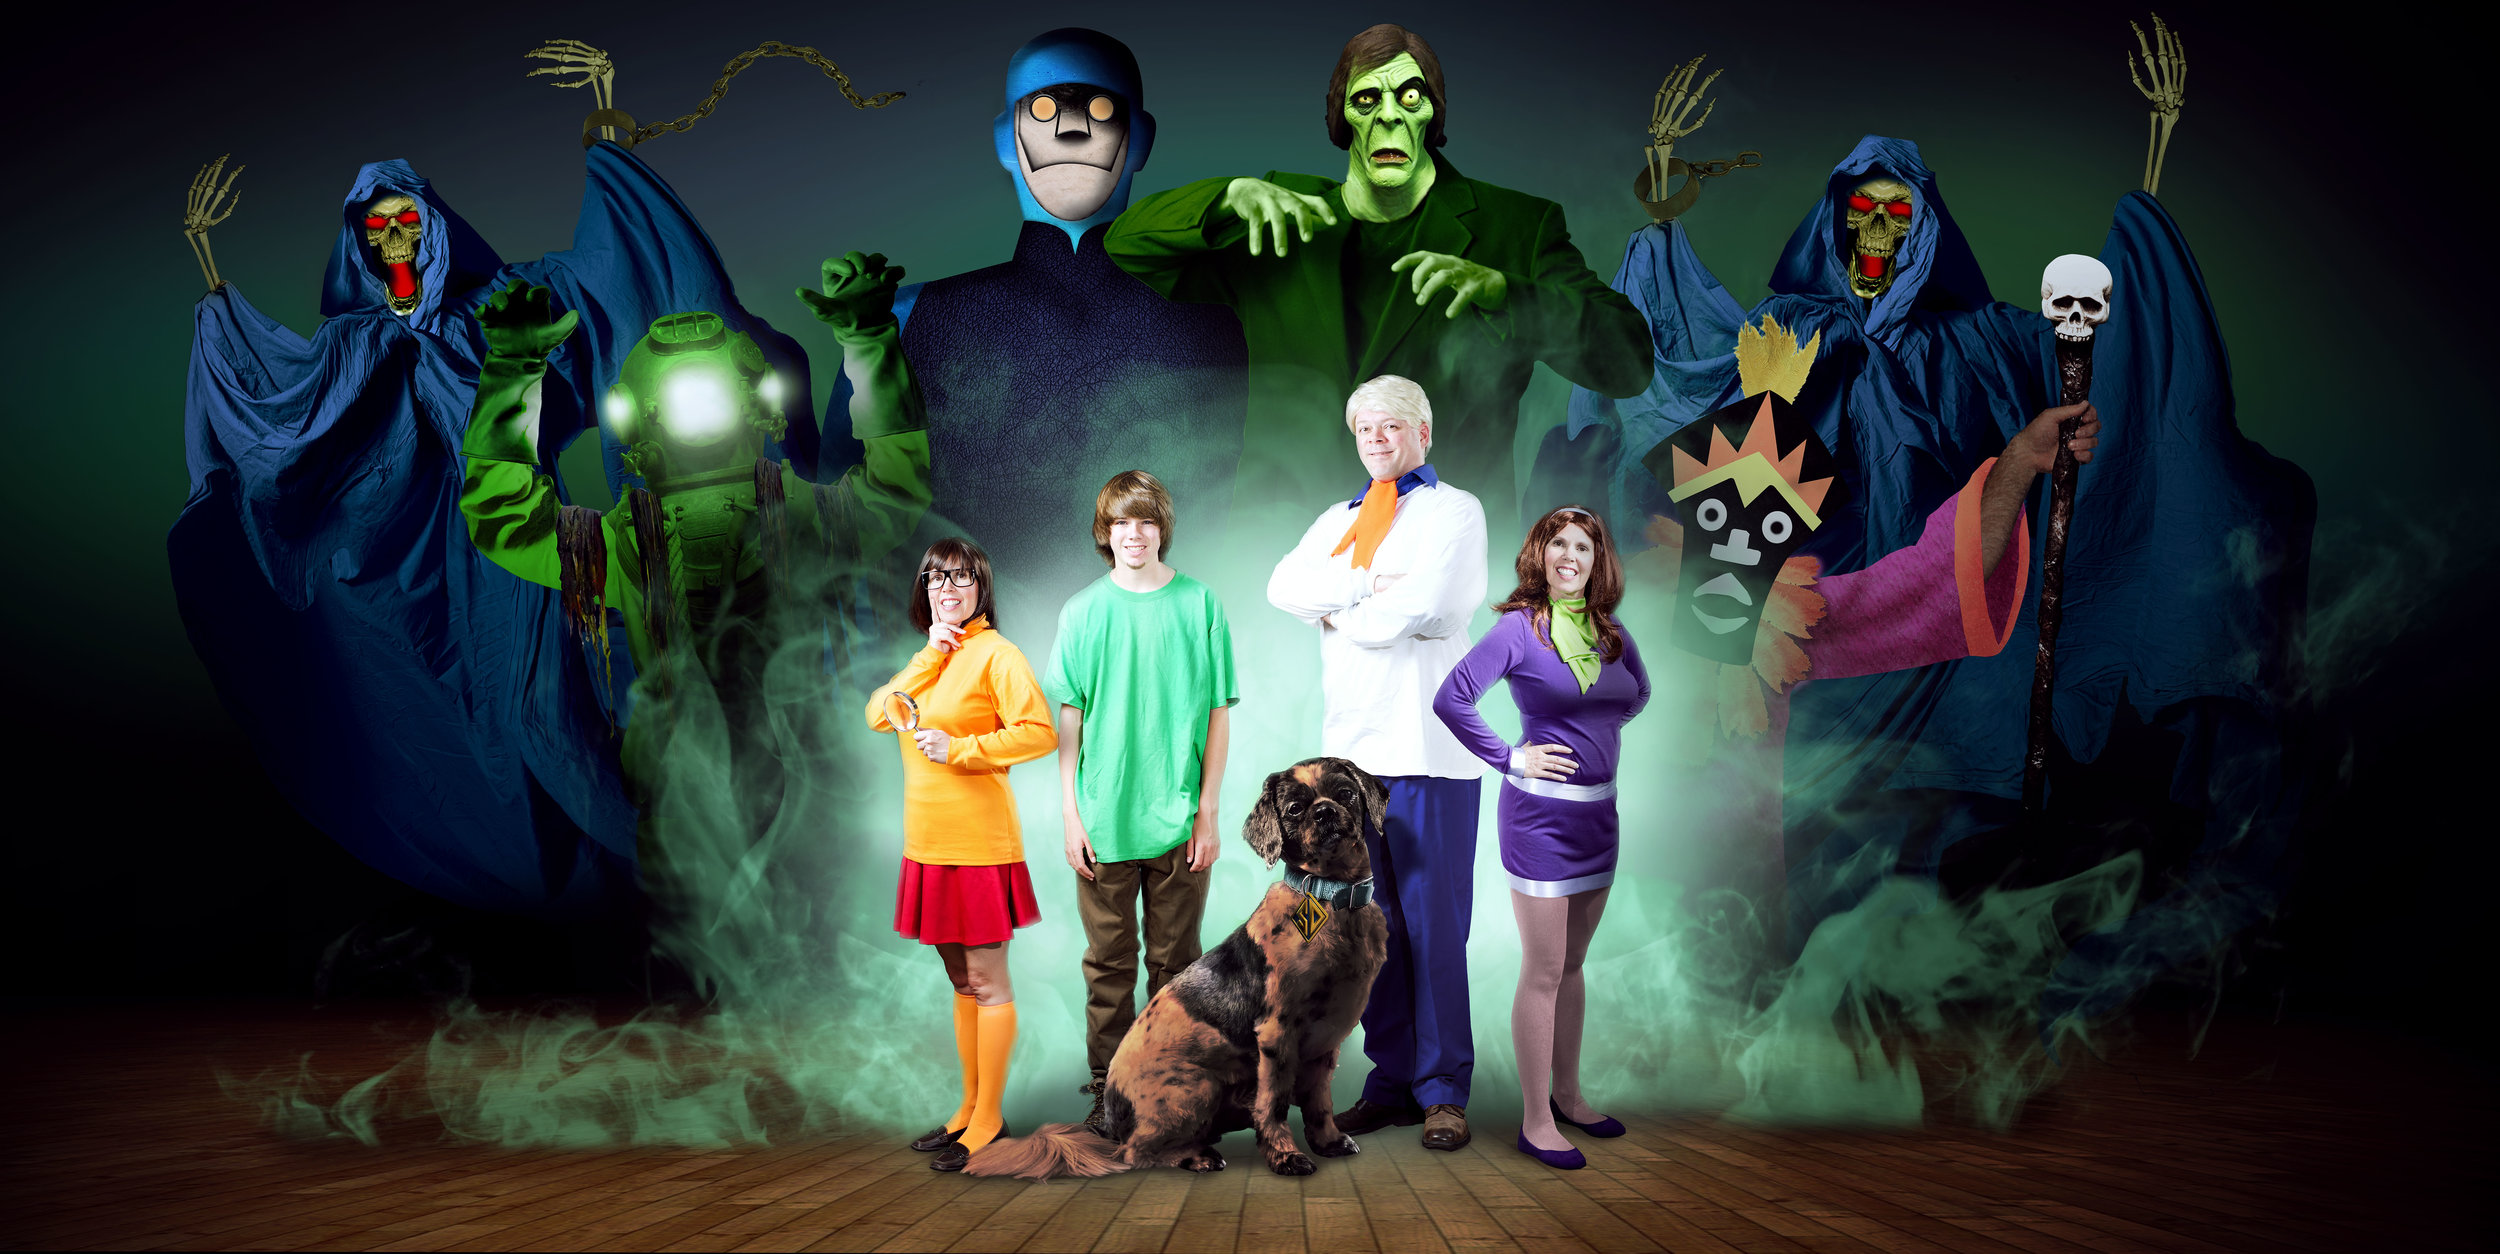 Halloween-Family-Portrait-2015-with-villians2sm.jpg